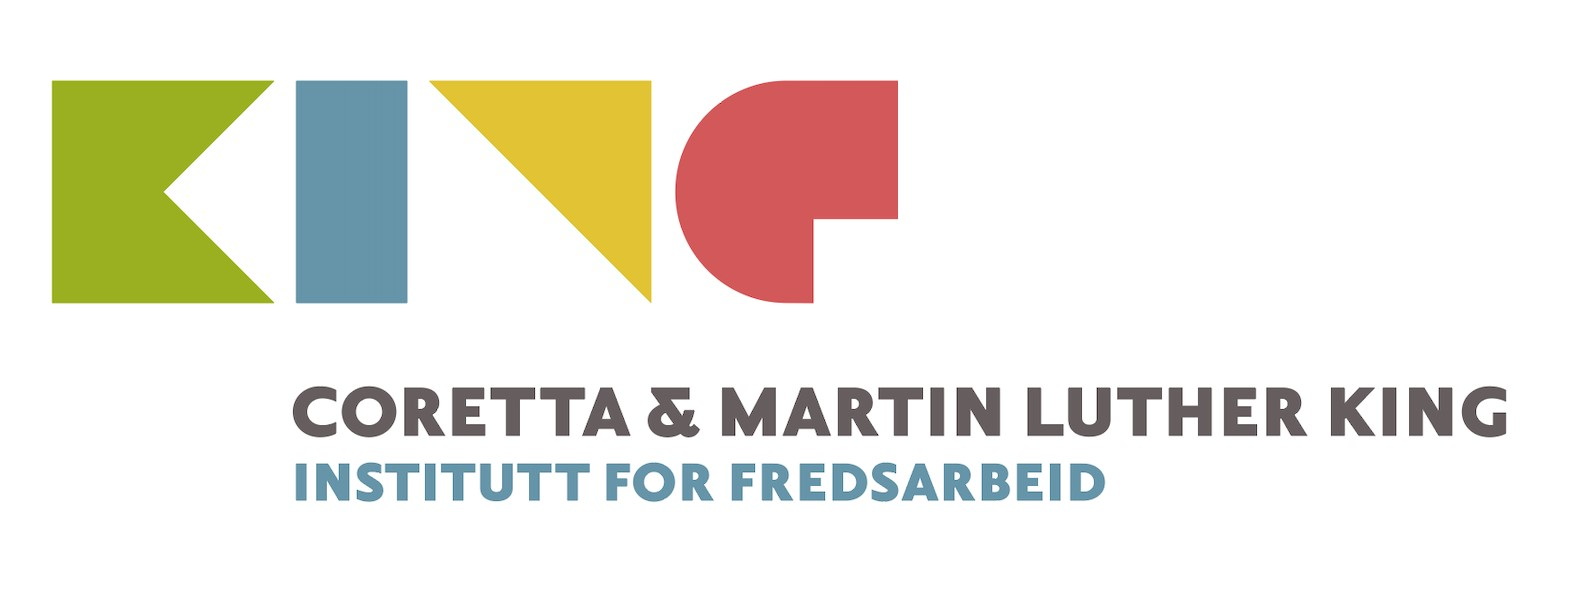 Coretta & Martin Luther King Institutt for fredsarbeid